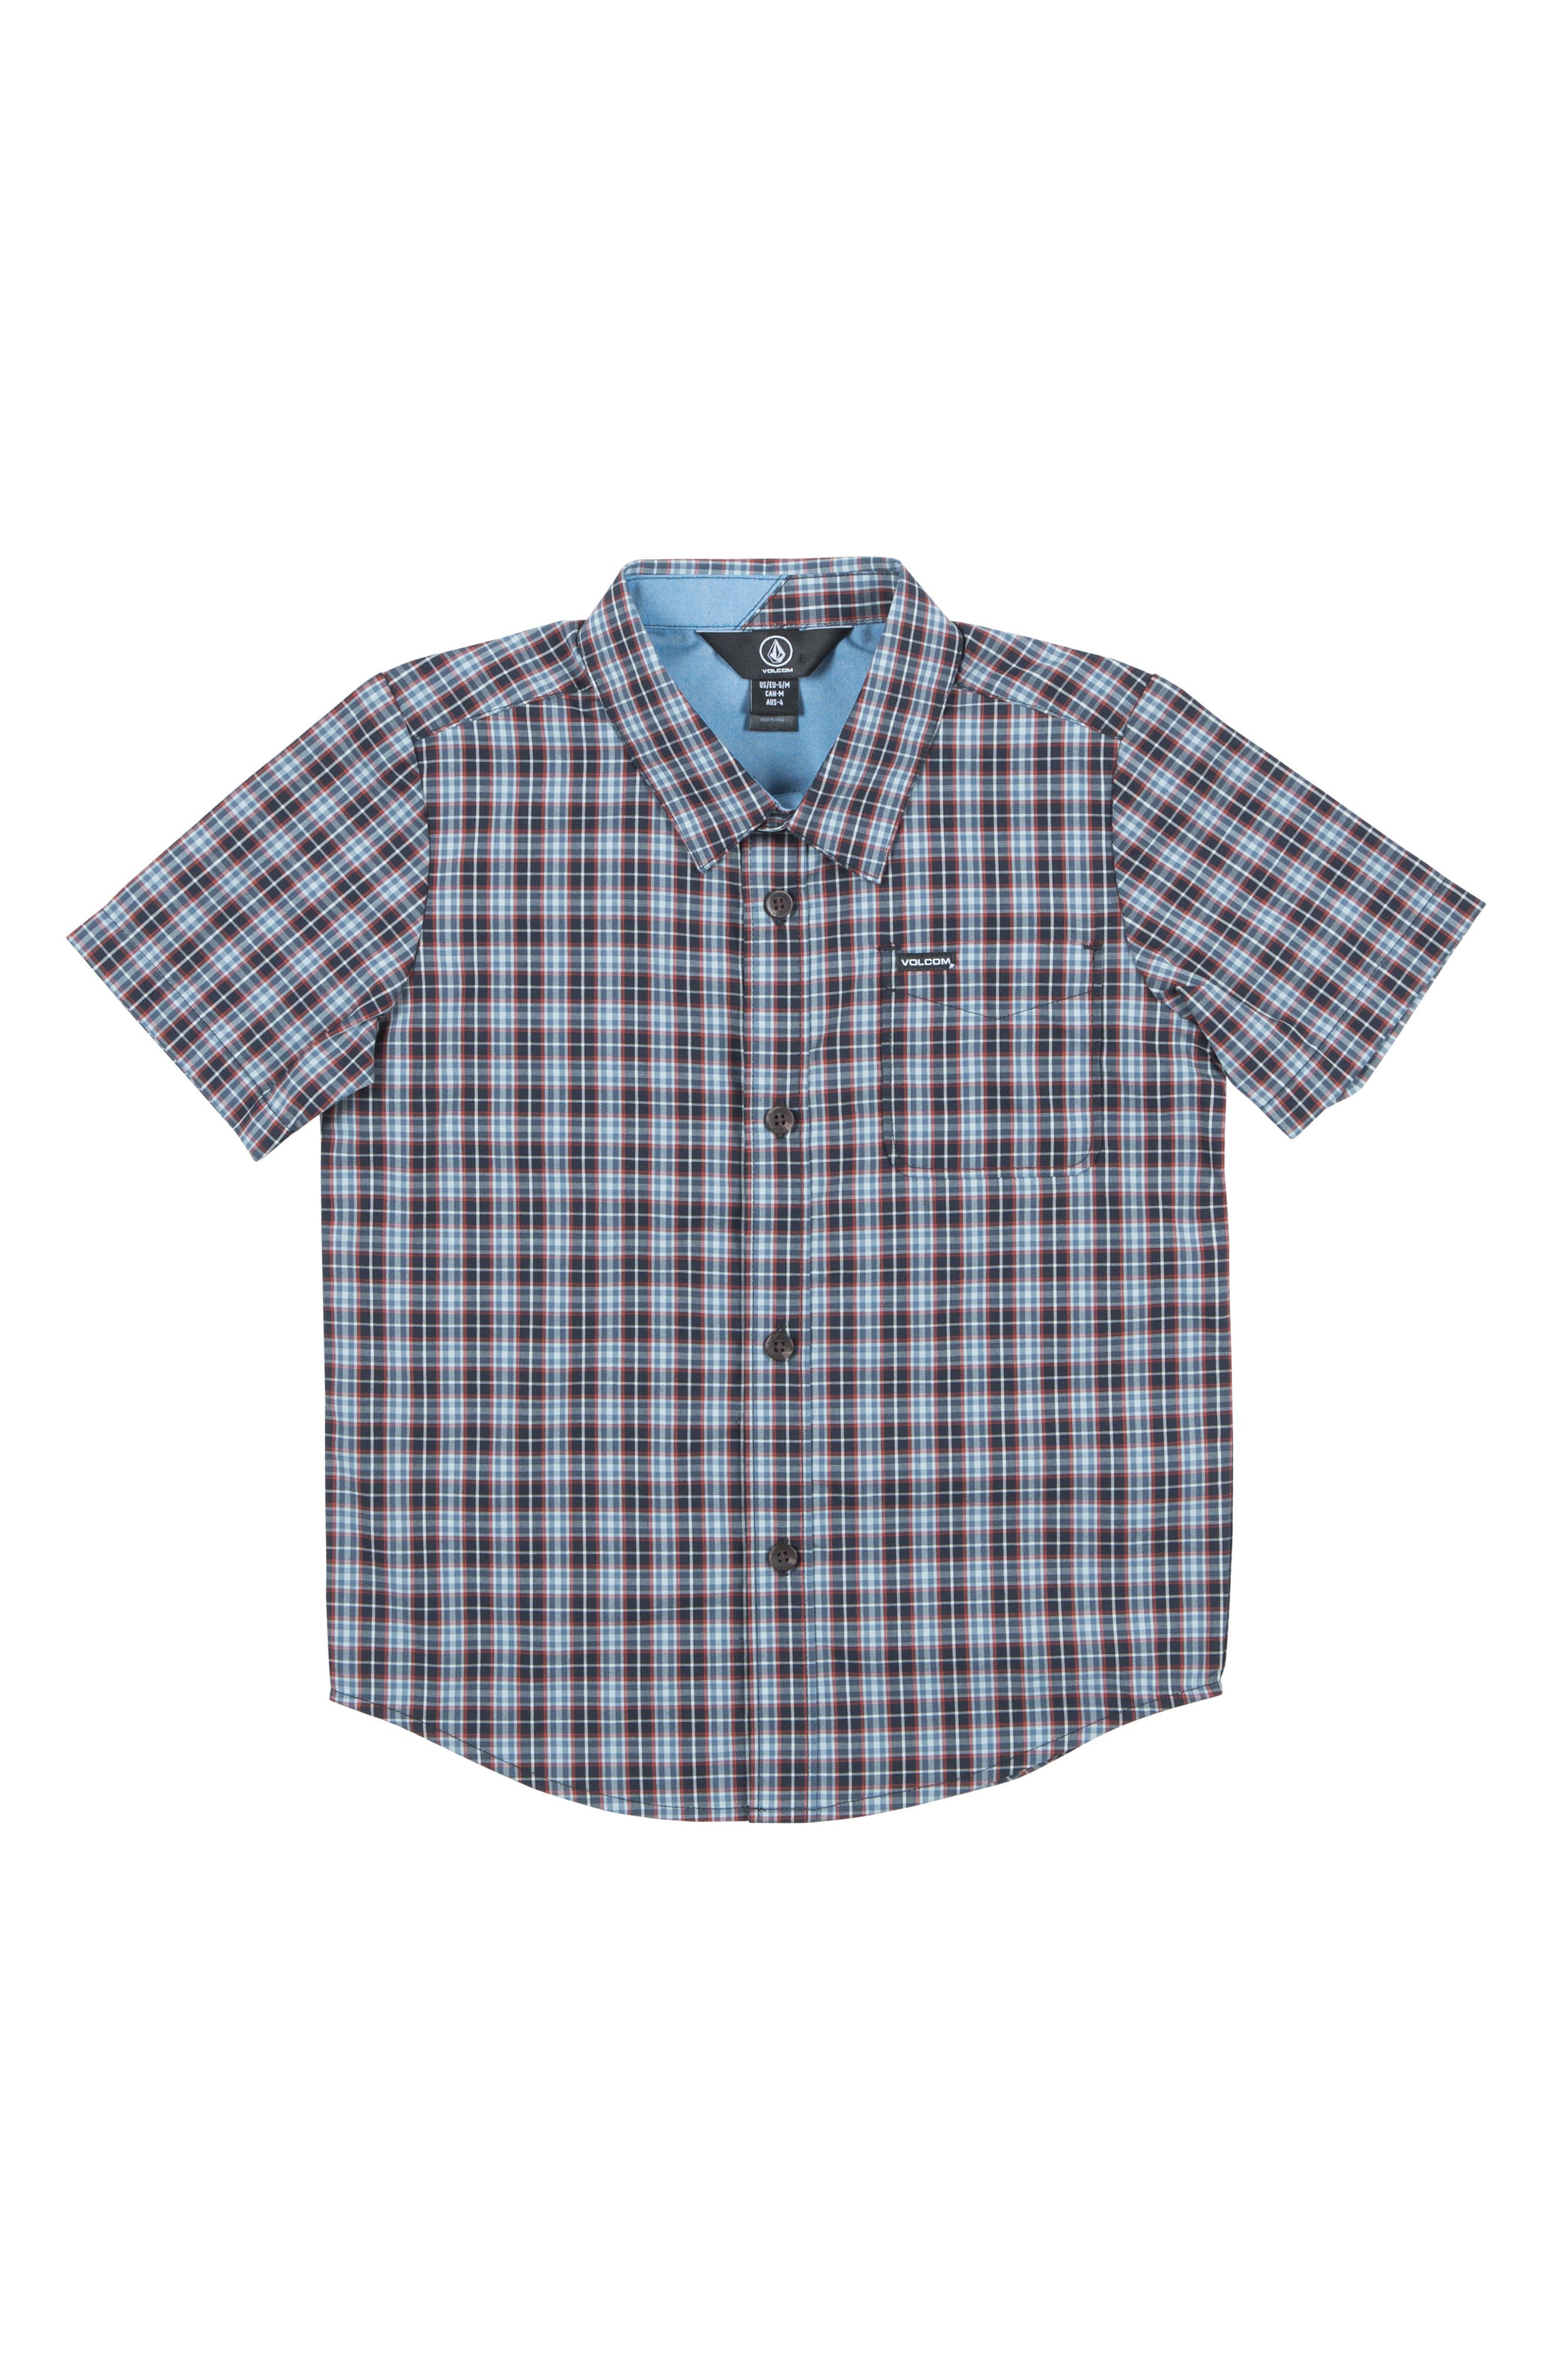 Volcom Harper Plaid Woven Shirt (Toddler Boys & Little Boys)